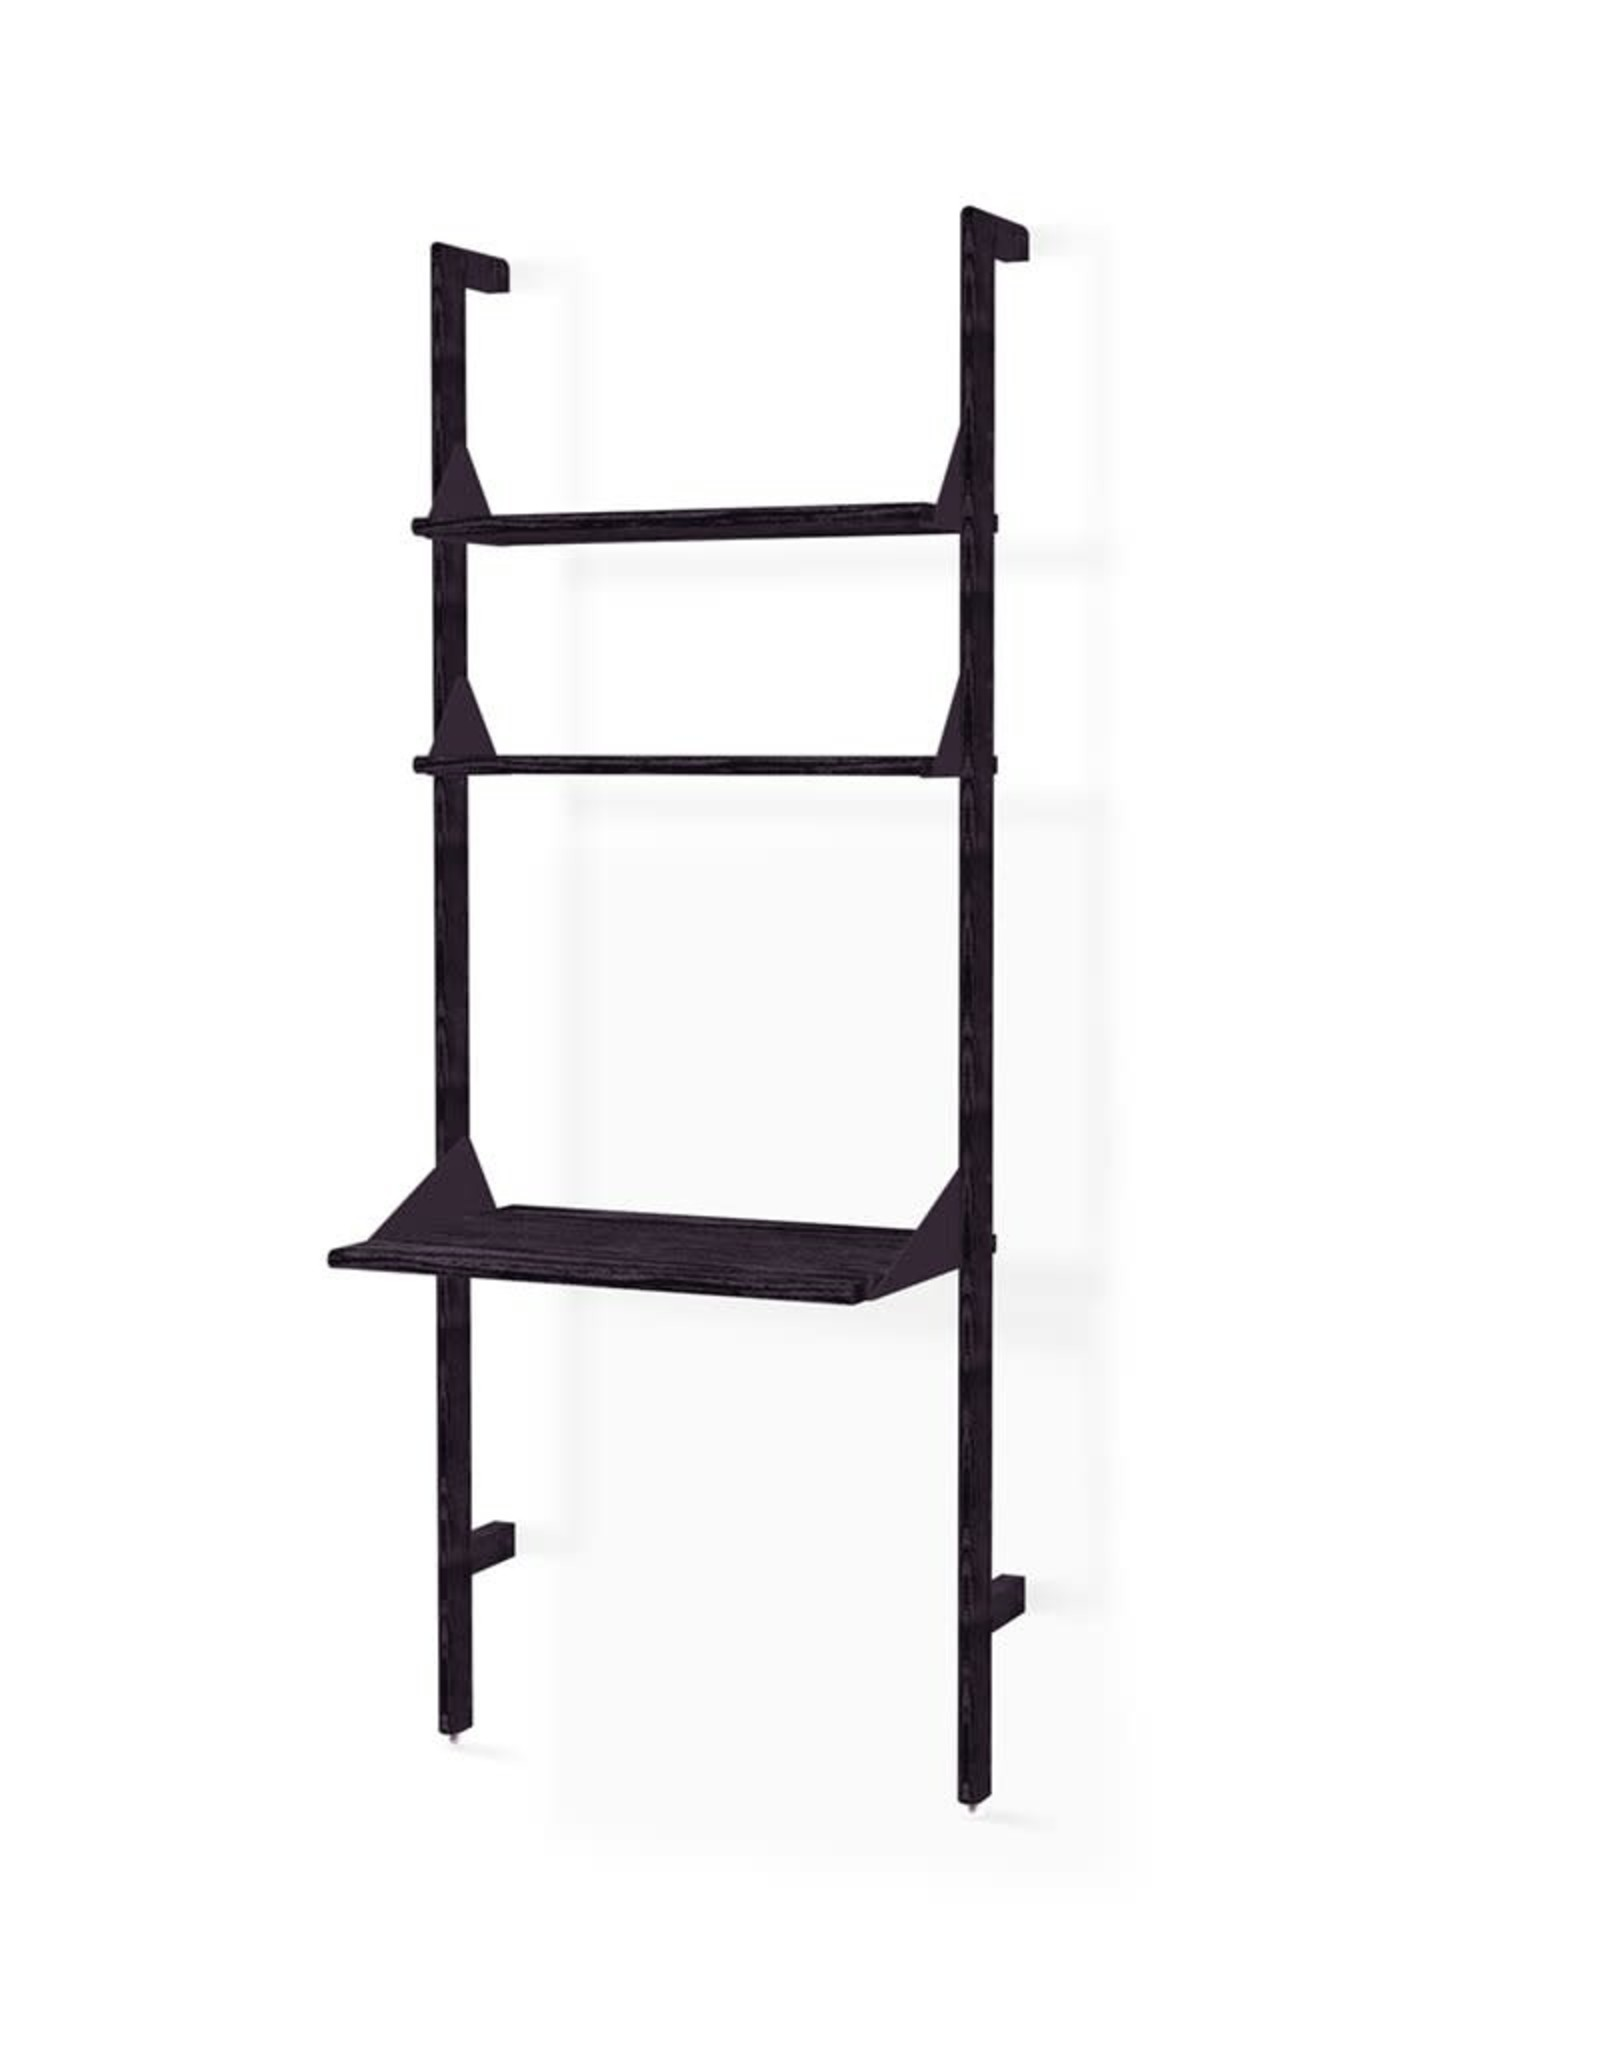 Gus* Modern Branch-1 Shelving Unit with Desk